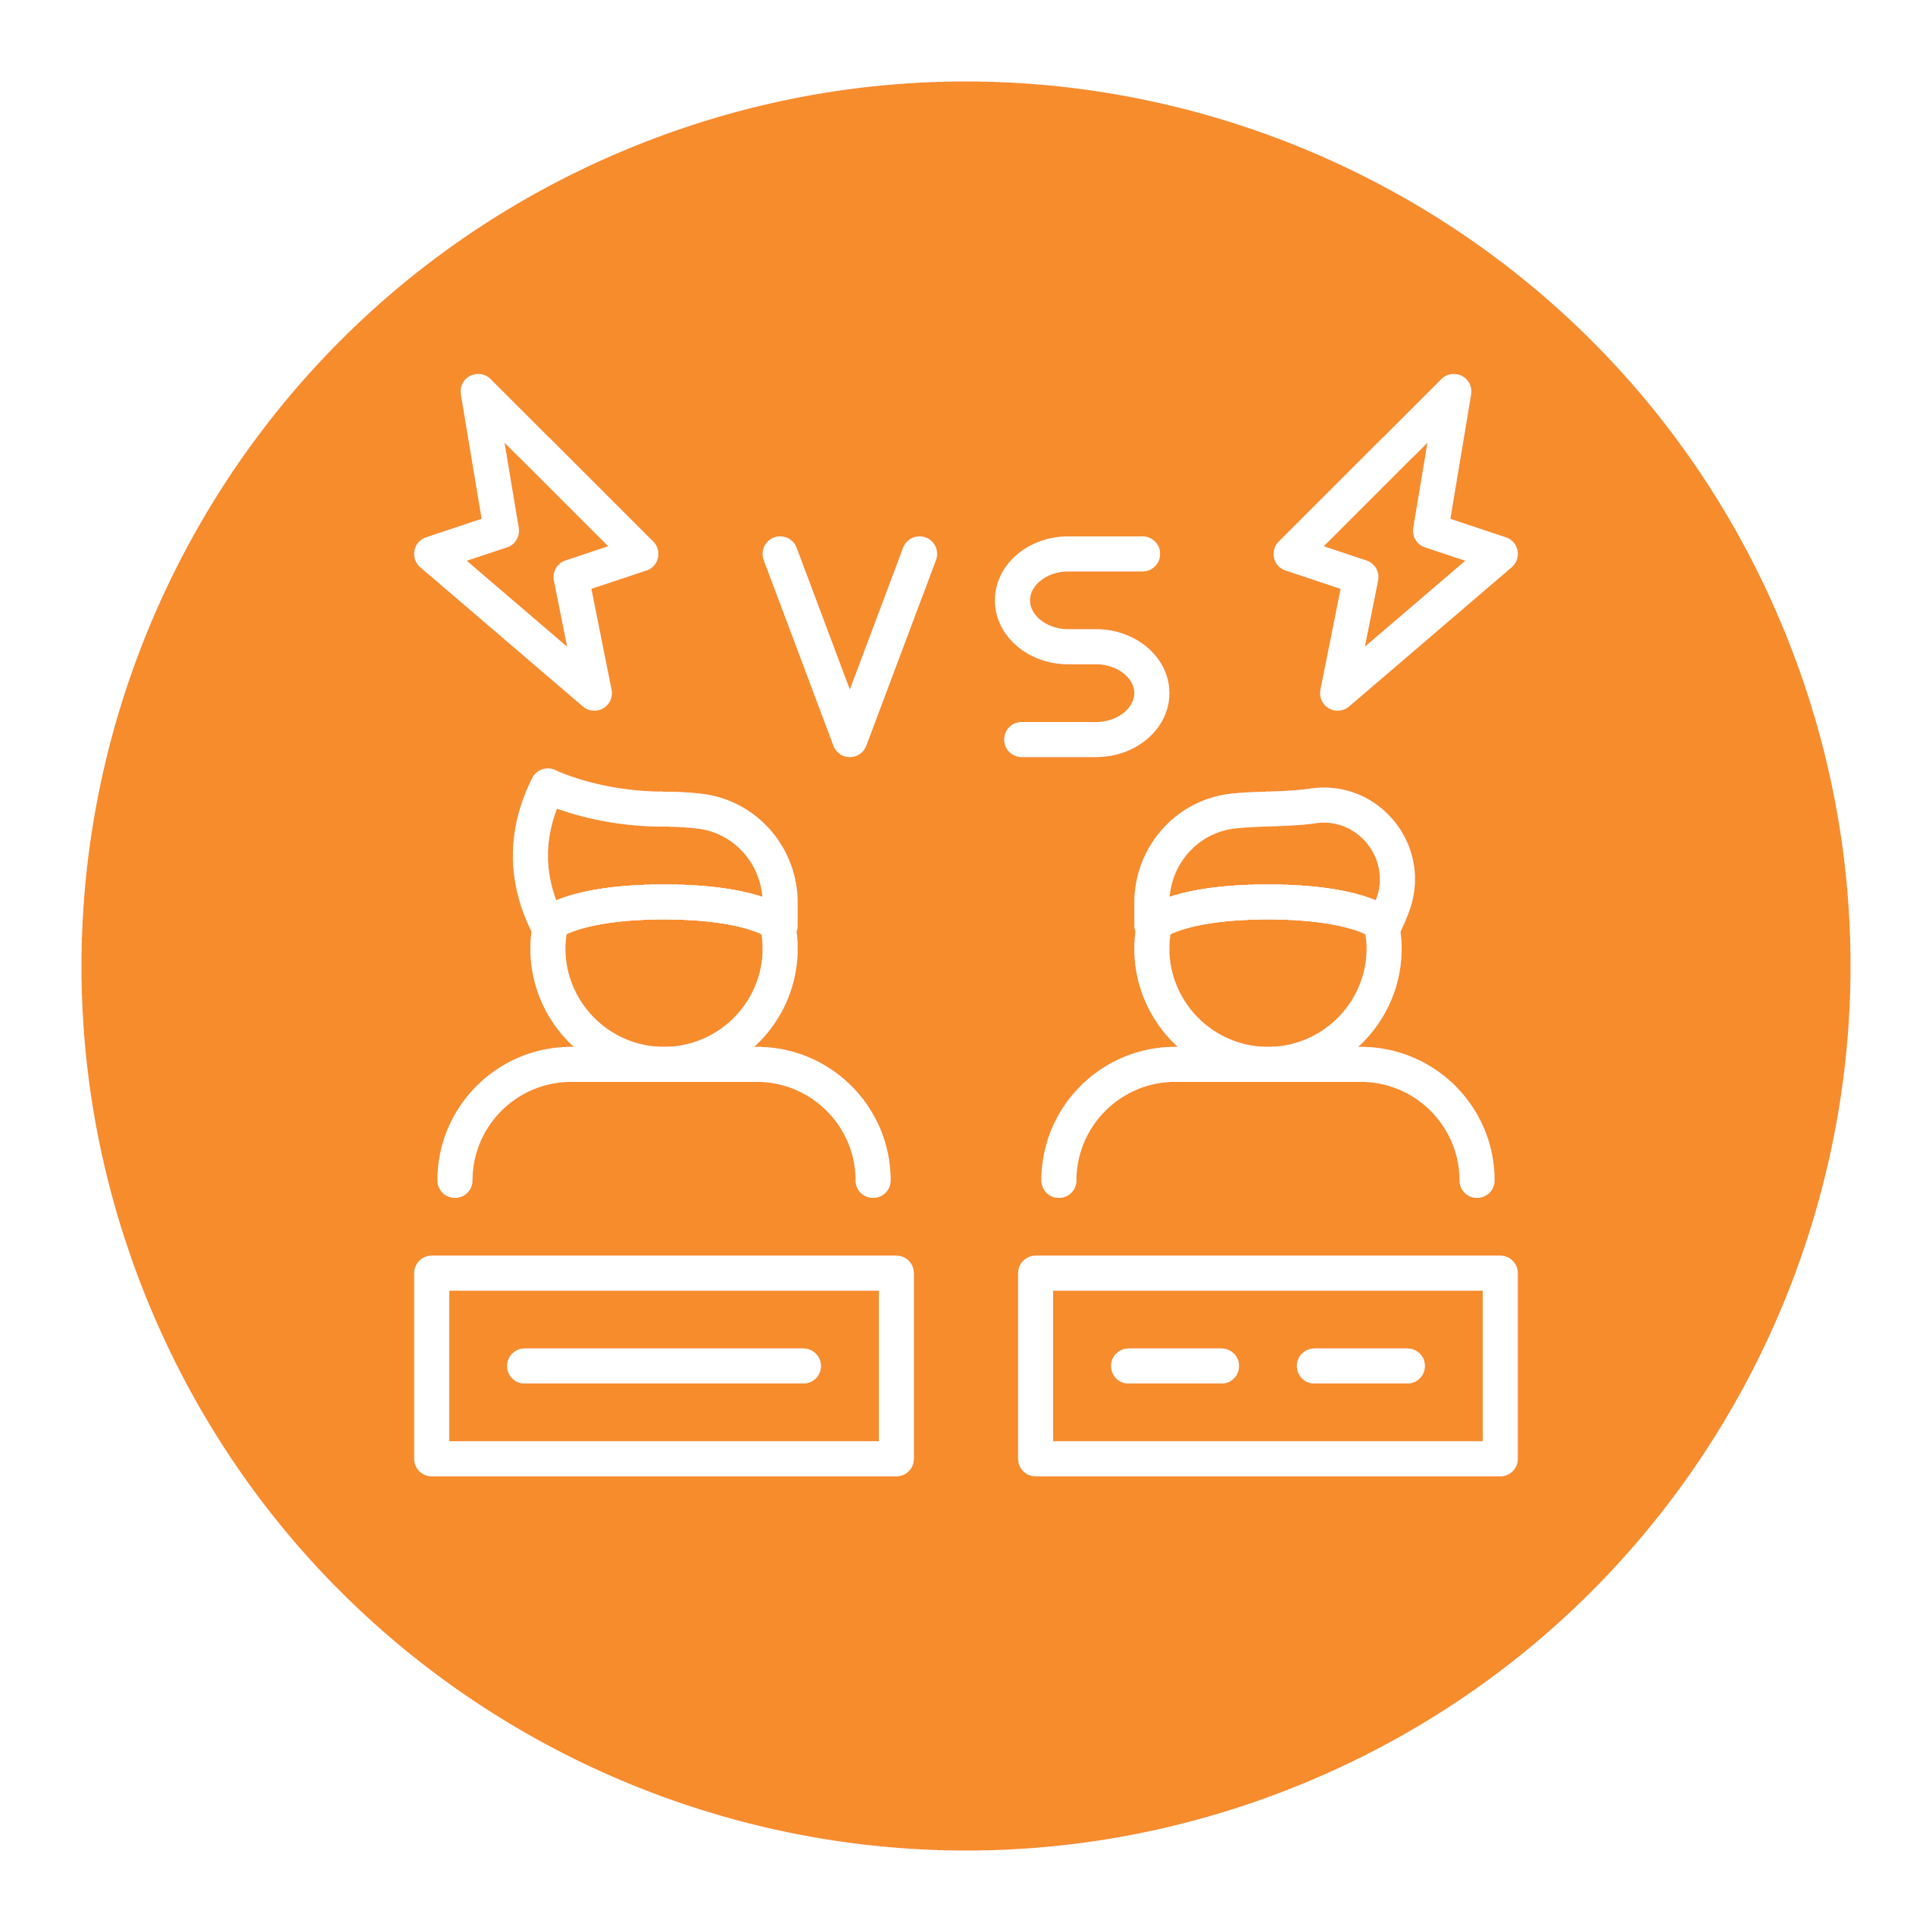 """An orange circle contains two figures with keyboards and the word """"vs"""" above them"""